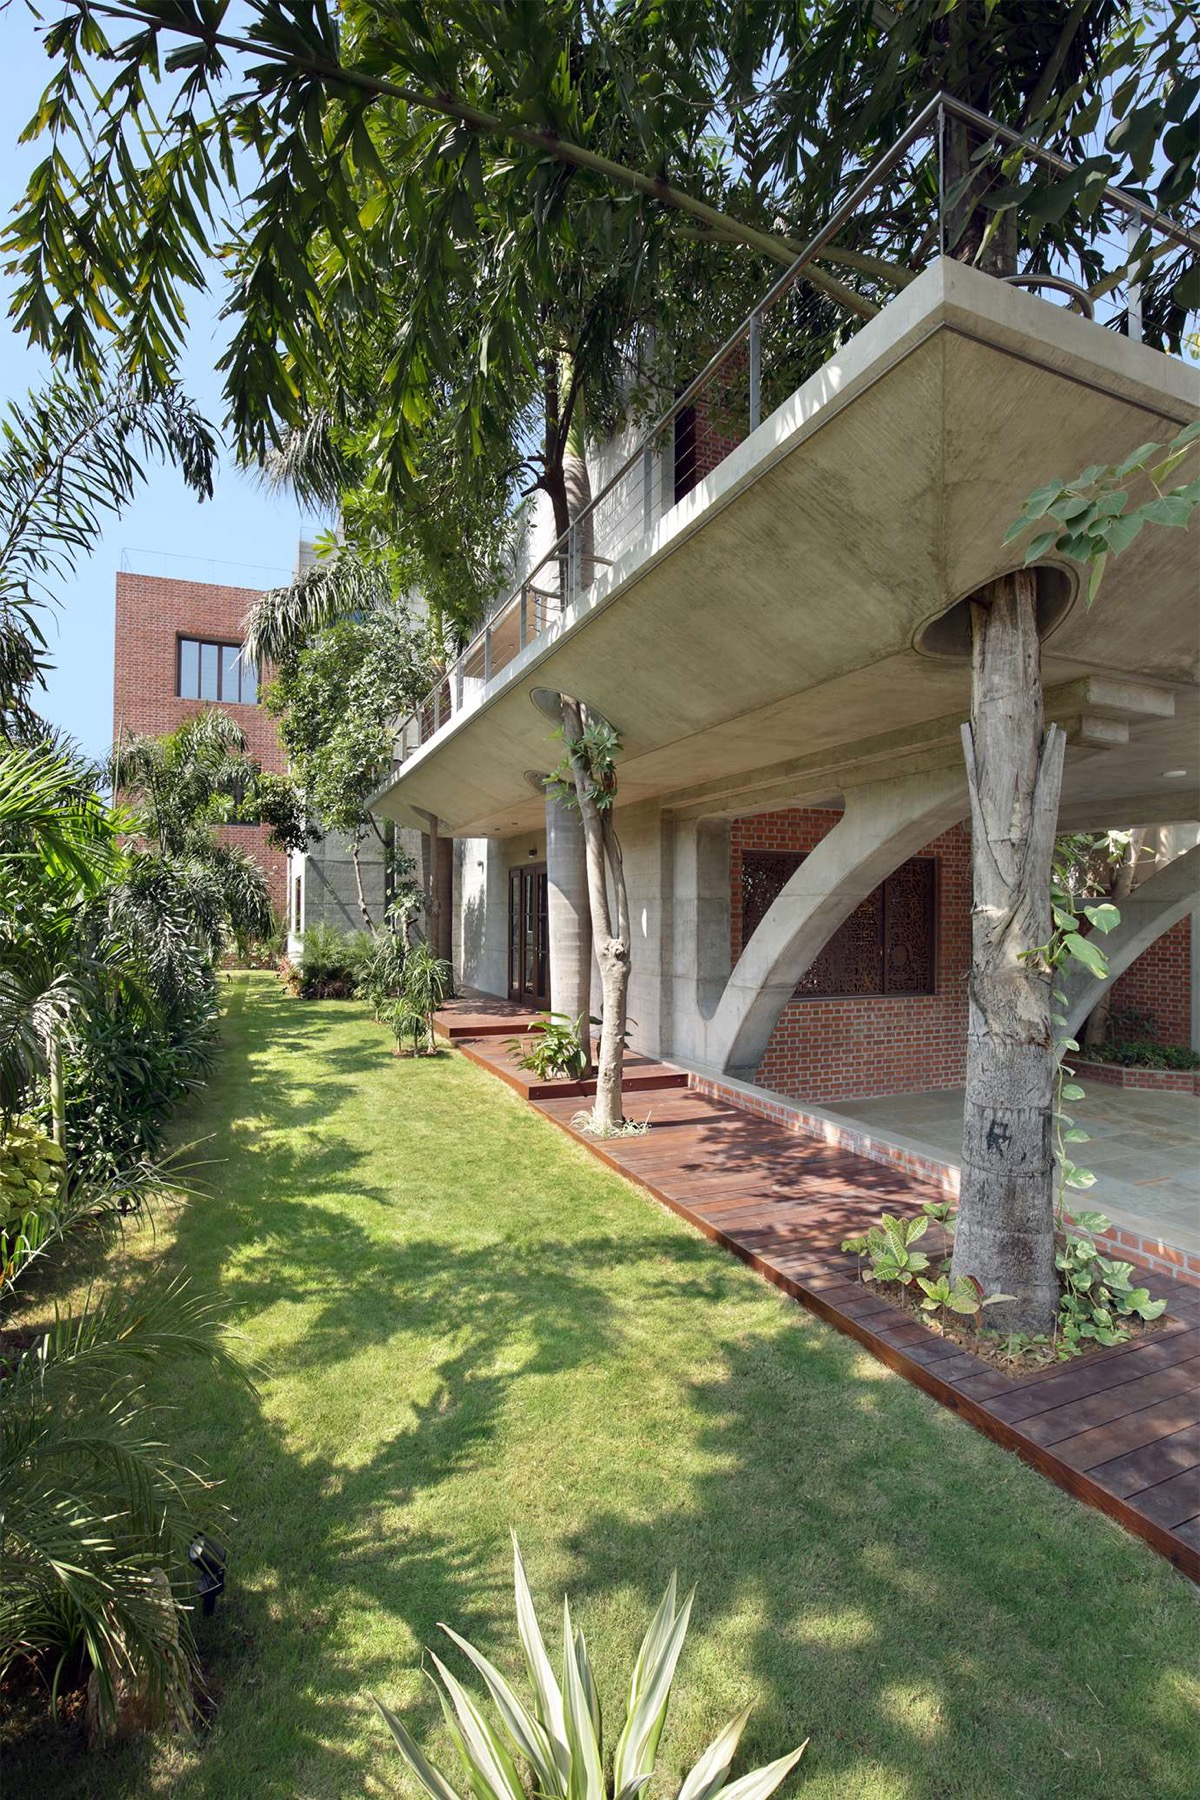 A Colour Rich Indian Home With Concrete Architecture And Interiors images 2